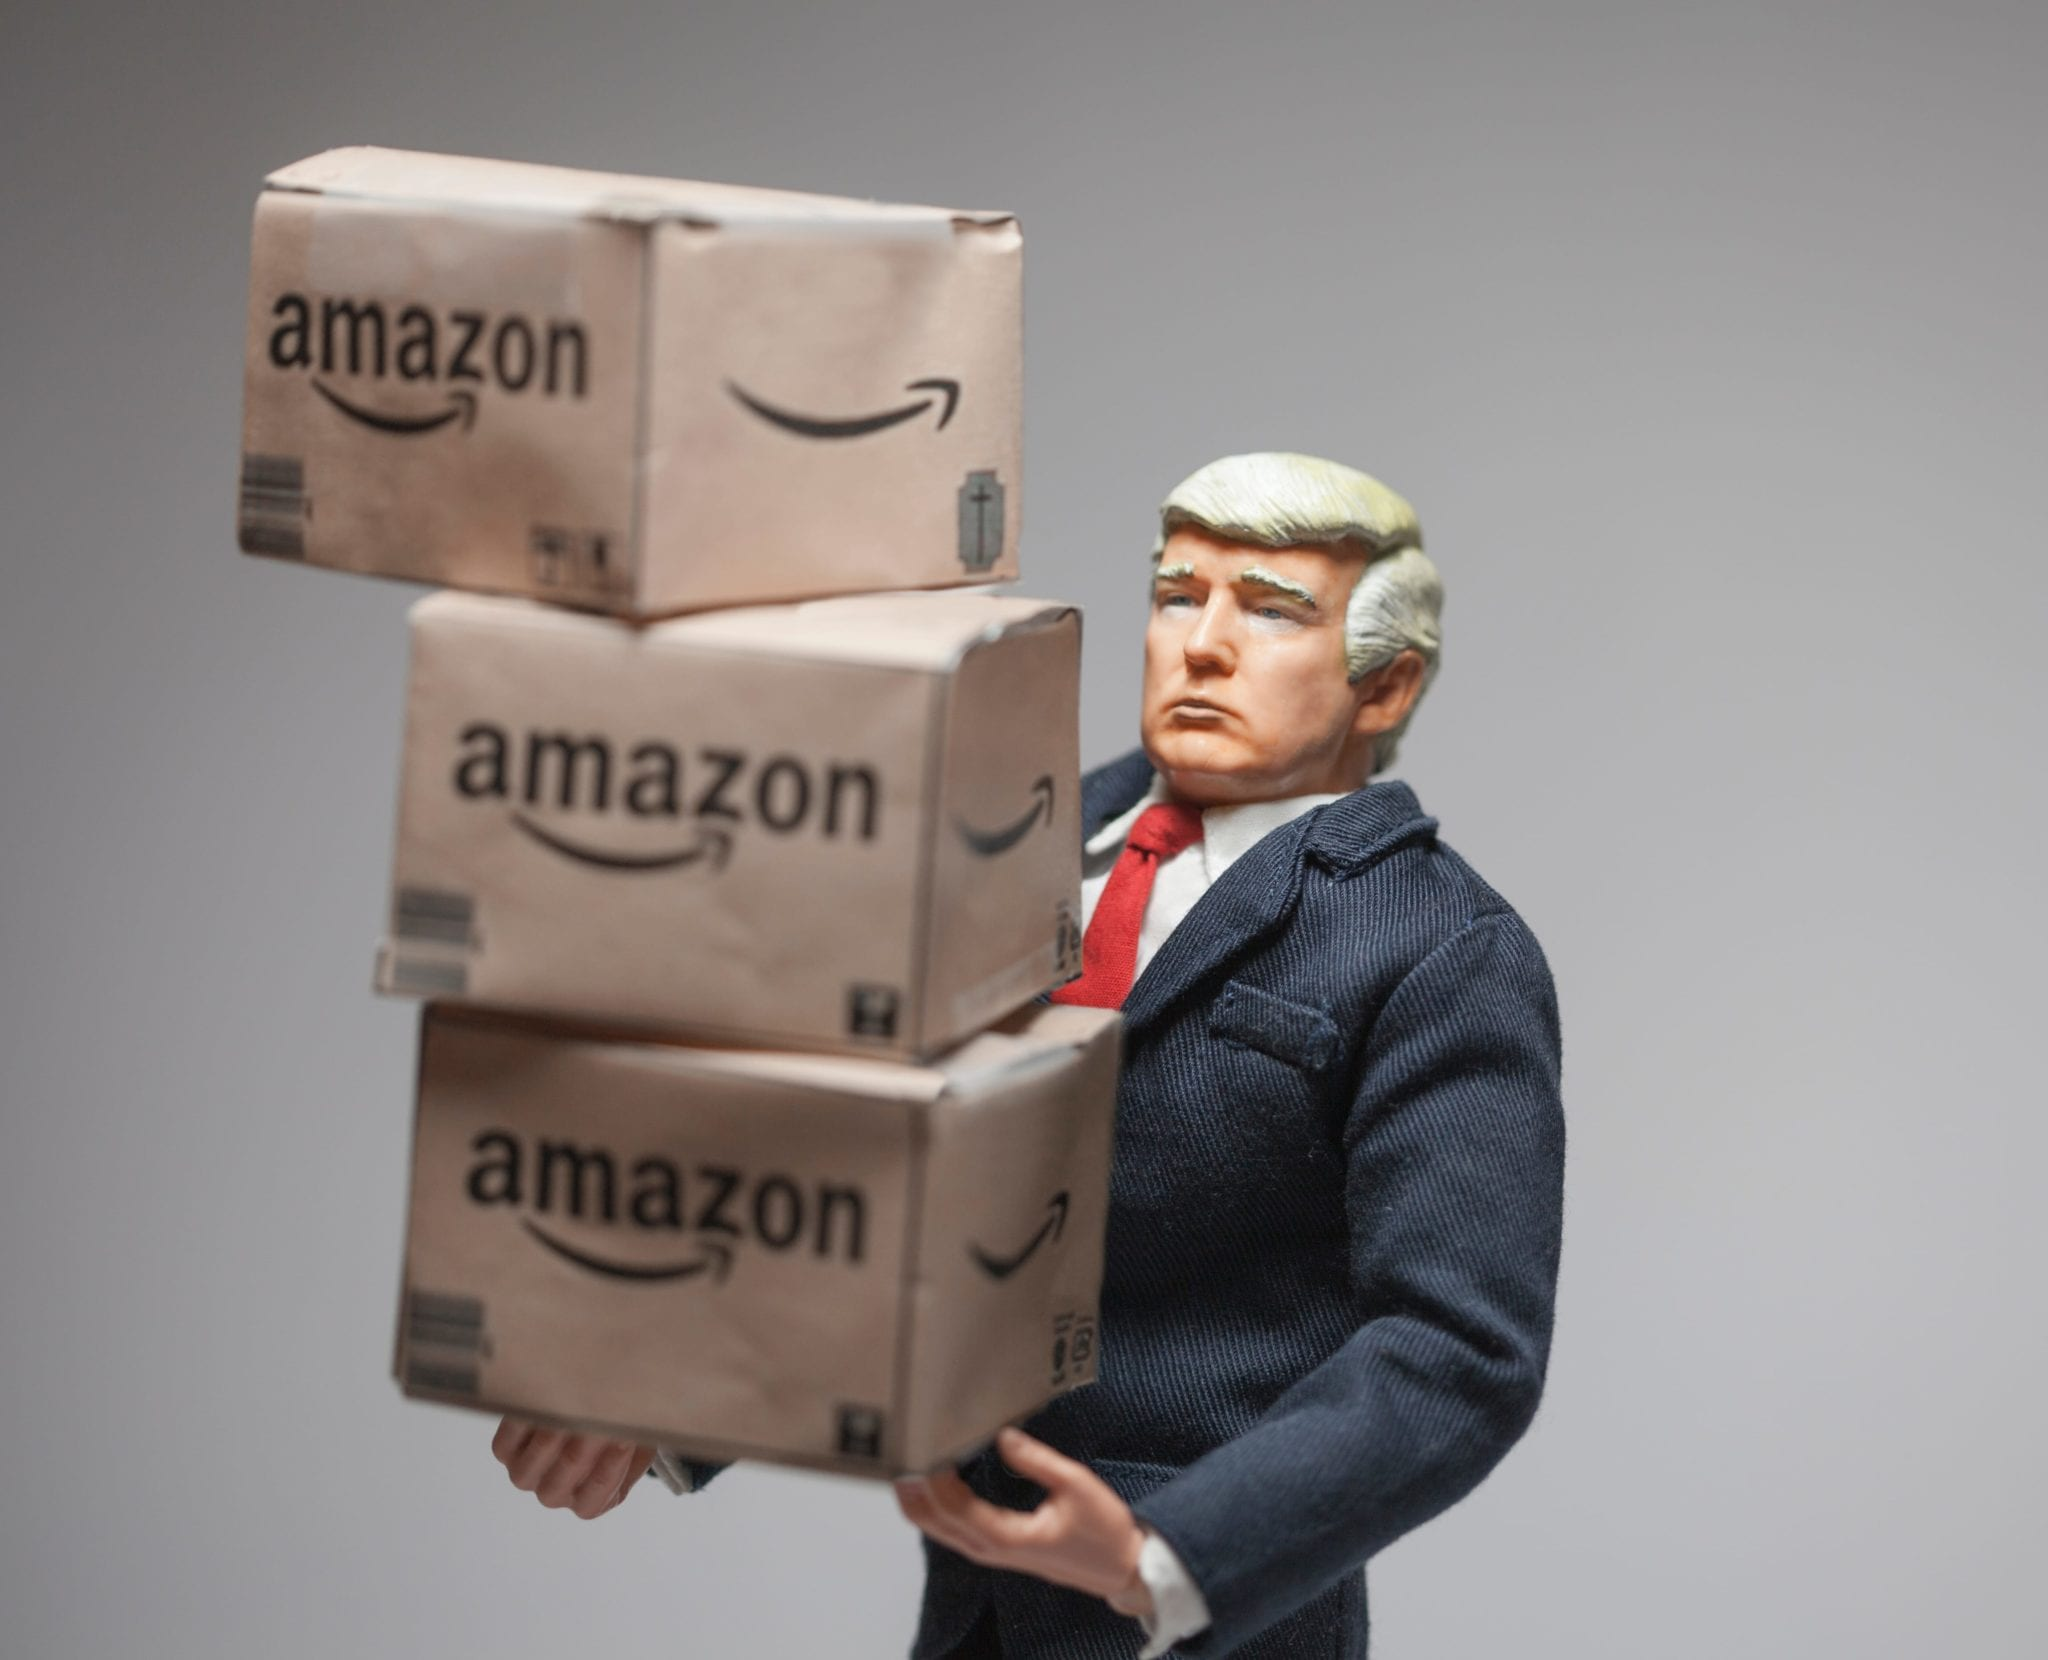 Amazon Can Make You a Small Business Owner for $10,000